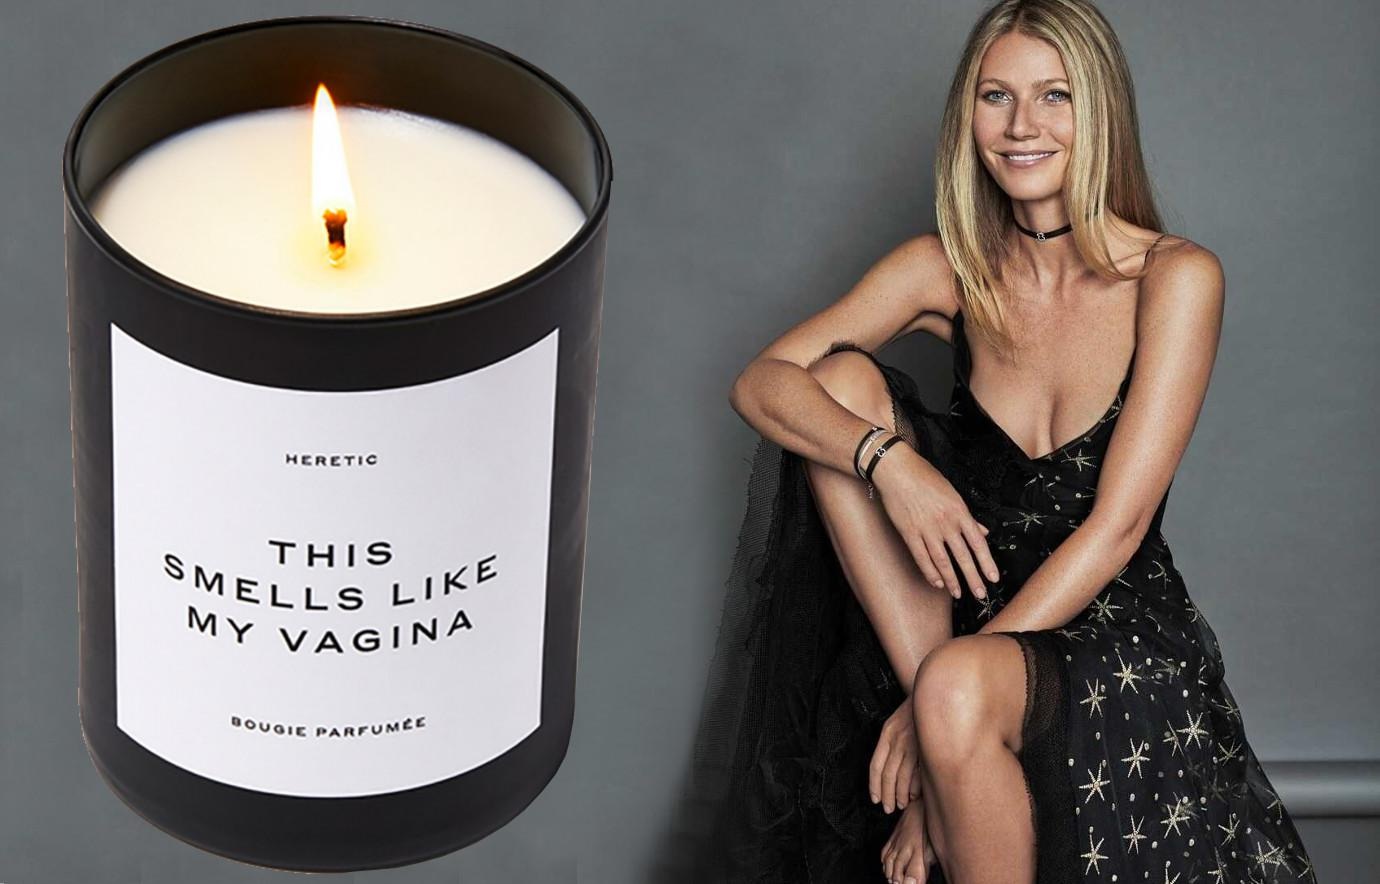 Gwyneth Paltrow Shares Goop Vagina Candle Inspiration